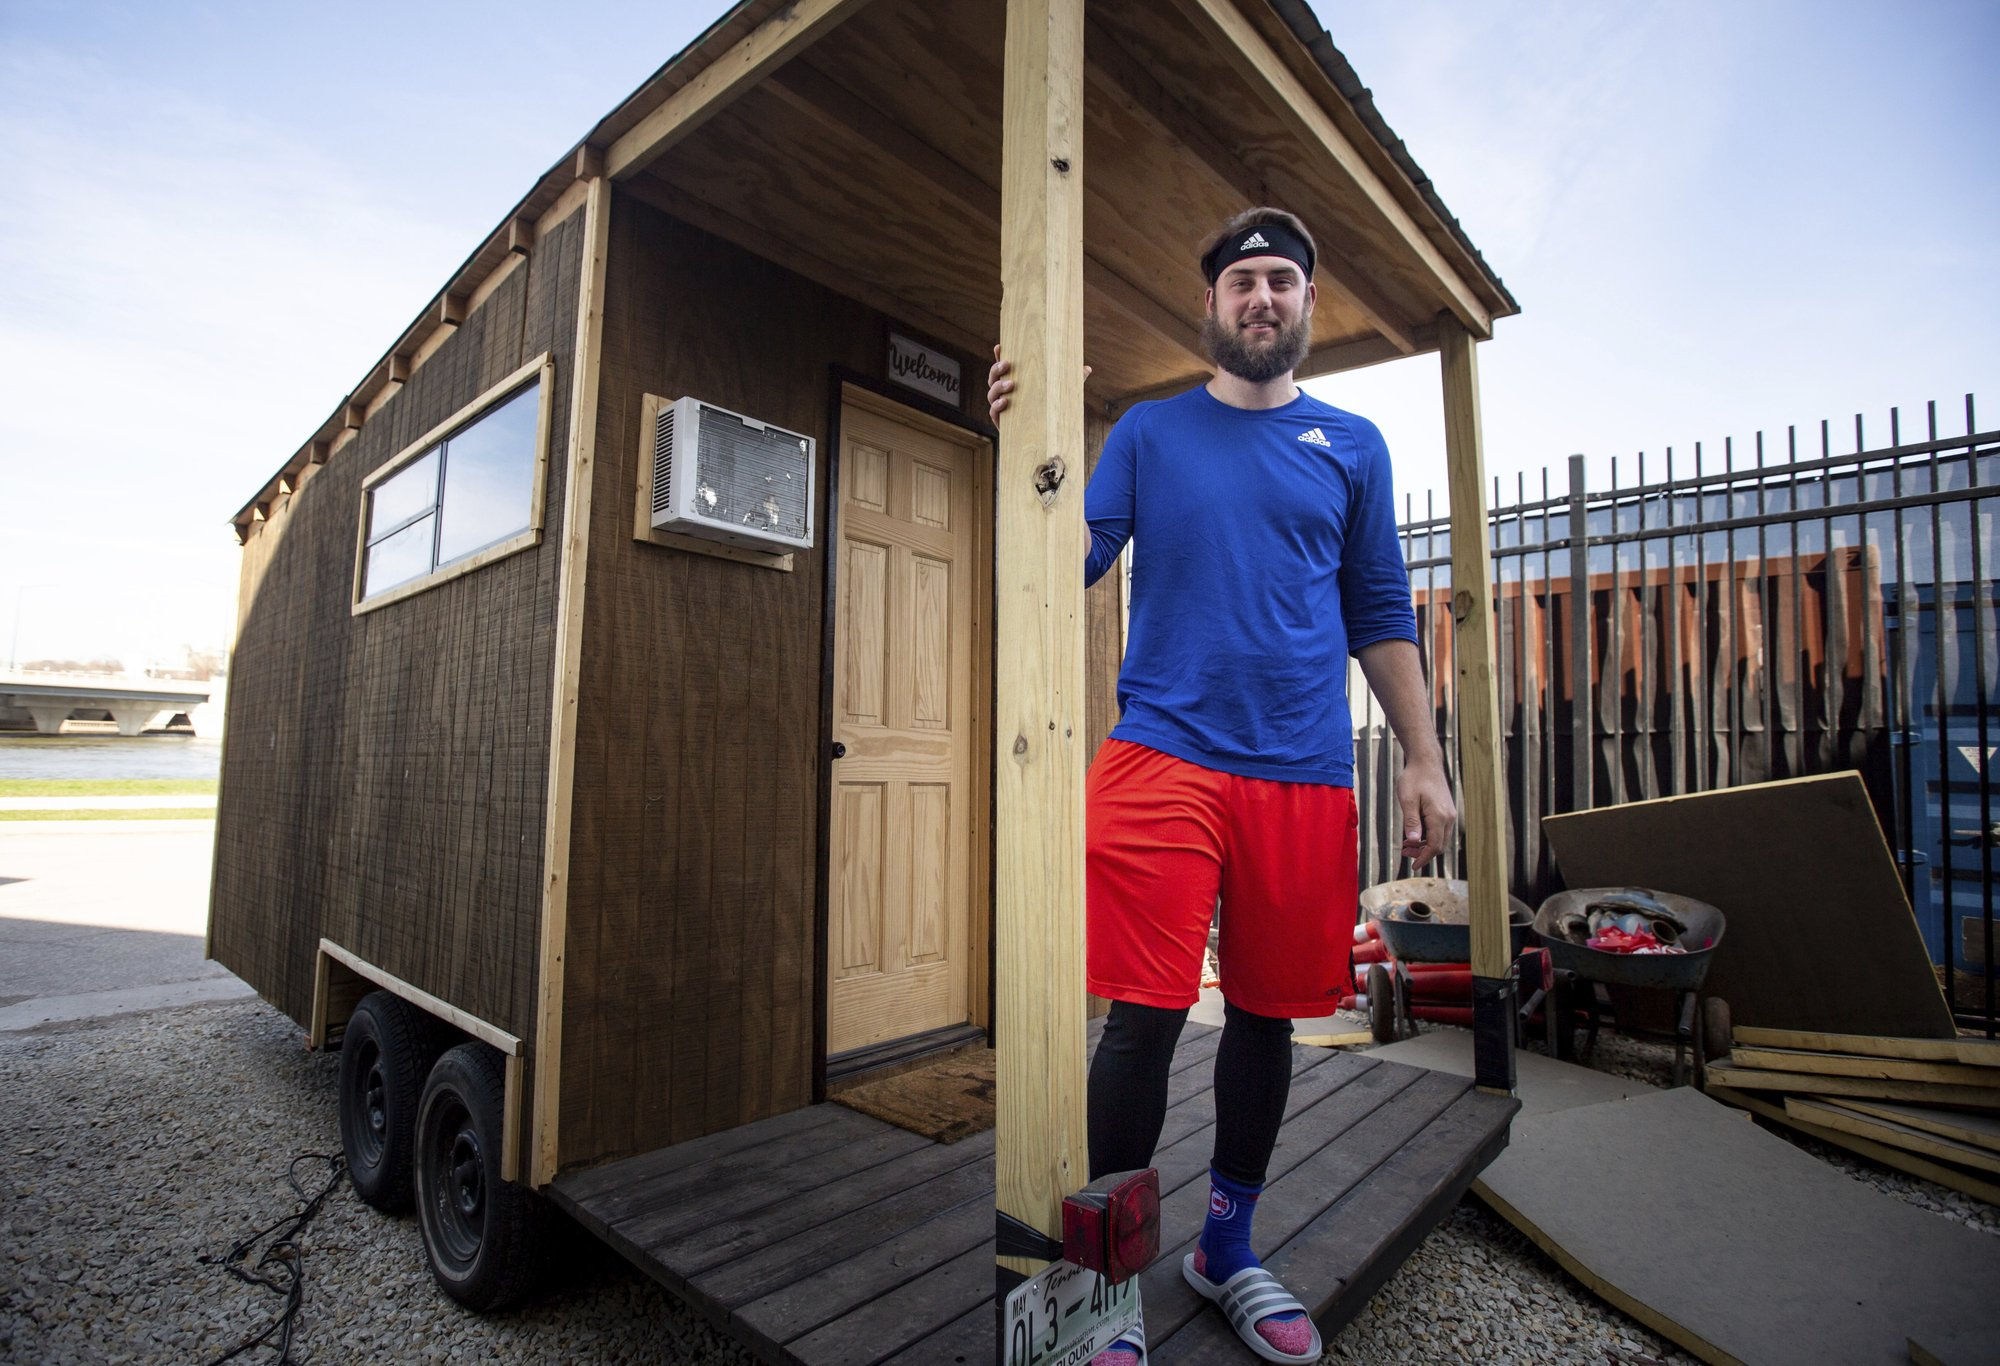 Iowa Cubs pitcher finds peace in low-cost tiny home he built